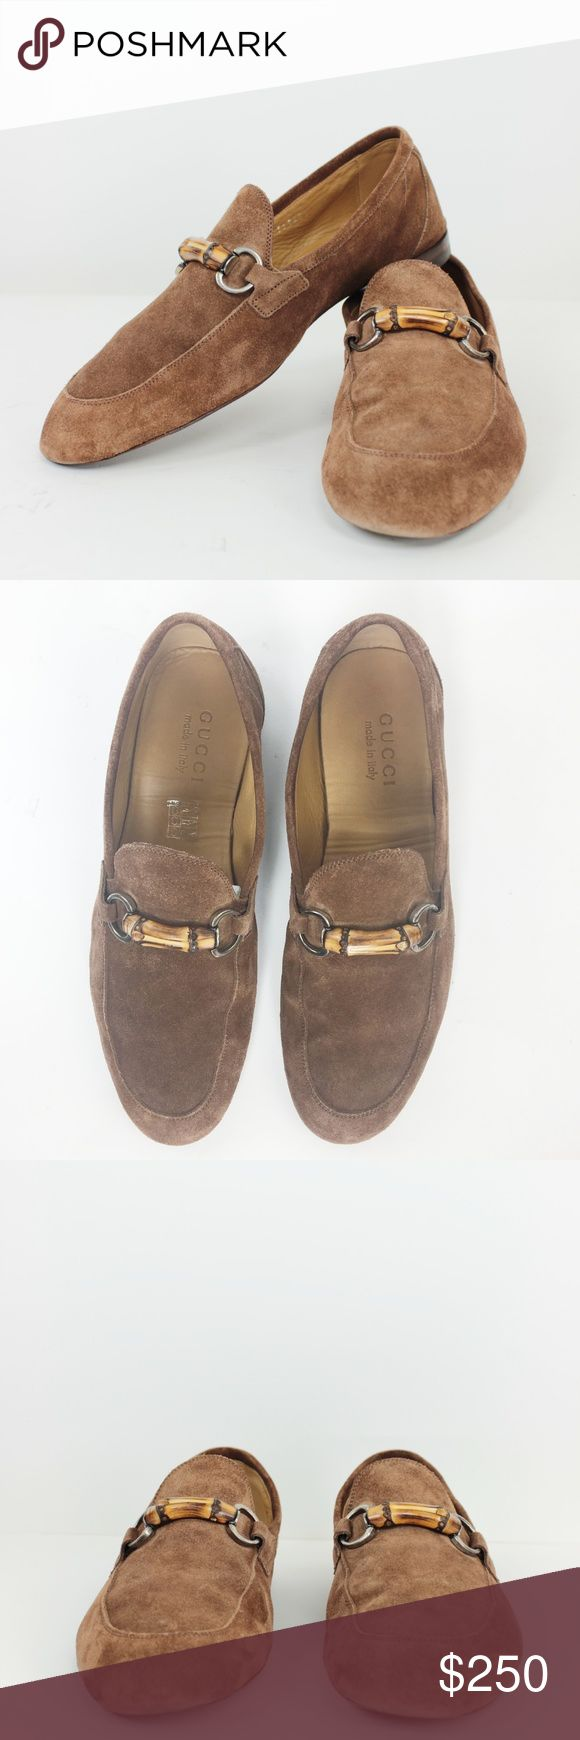 """Gucci Suede Bamboo Horsebit Loafers Shoes 7.5 VGC Gucci Men's Shoes Queen Suede Tan Brown Slip On Loafers Signature Bamboo Wooden Accent Silver Bit. Padded Insole. English Heel. Casual Formal Everyday Driving 100% AUTHENTIC Retails $650 Size: 7 UK 7.5 US 41 IT Heel Height: 0.75"""" Closure: Slip On Upper: Suede Lining / Sole: Leather Country: Italy Style #: 368435 Condition: Pre-Owned Very Good Used Condition, normal everyday wear, but shoes have been taken well care for. WT: 2.5 SKU: MA016; 20…"""